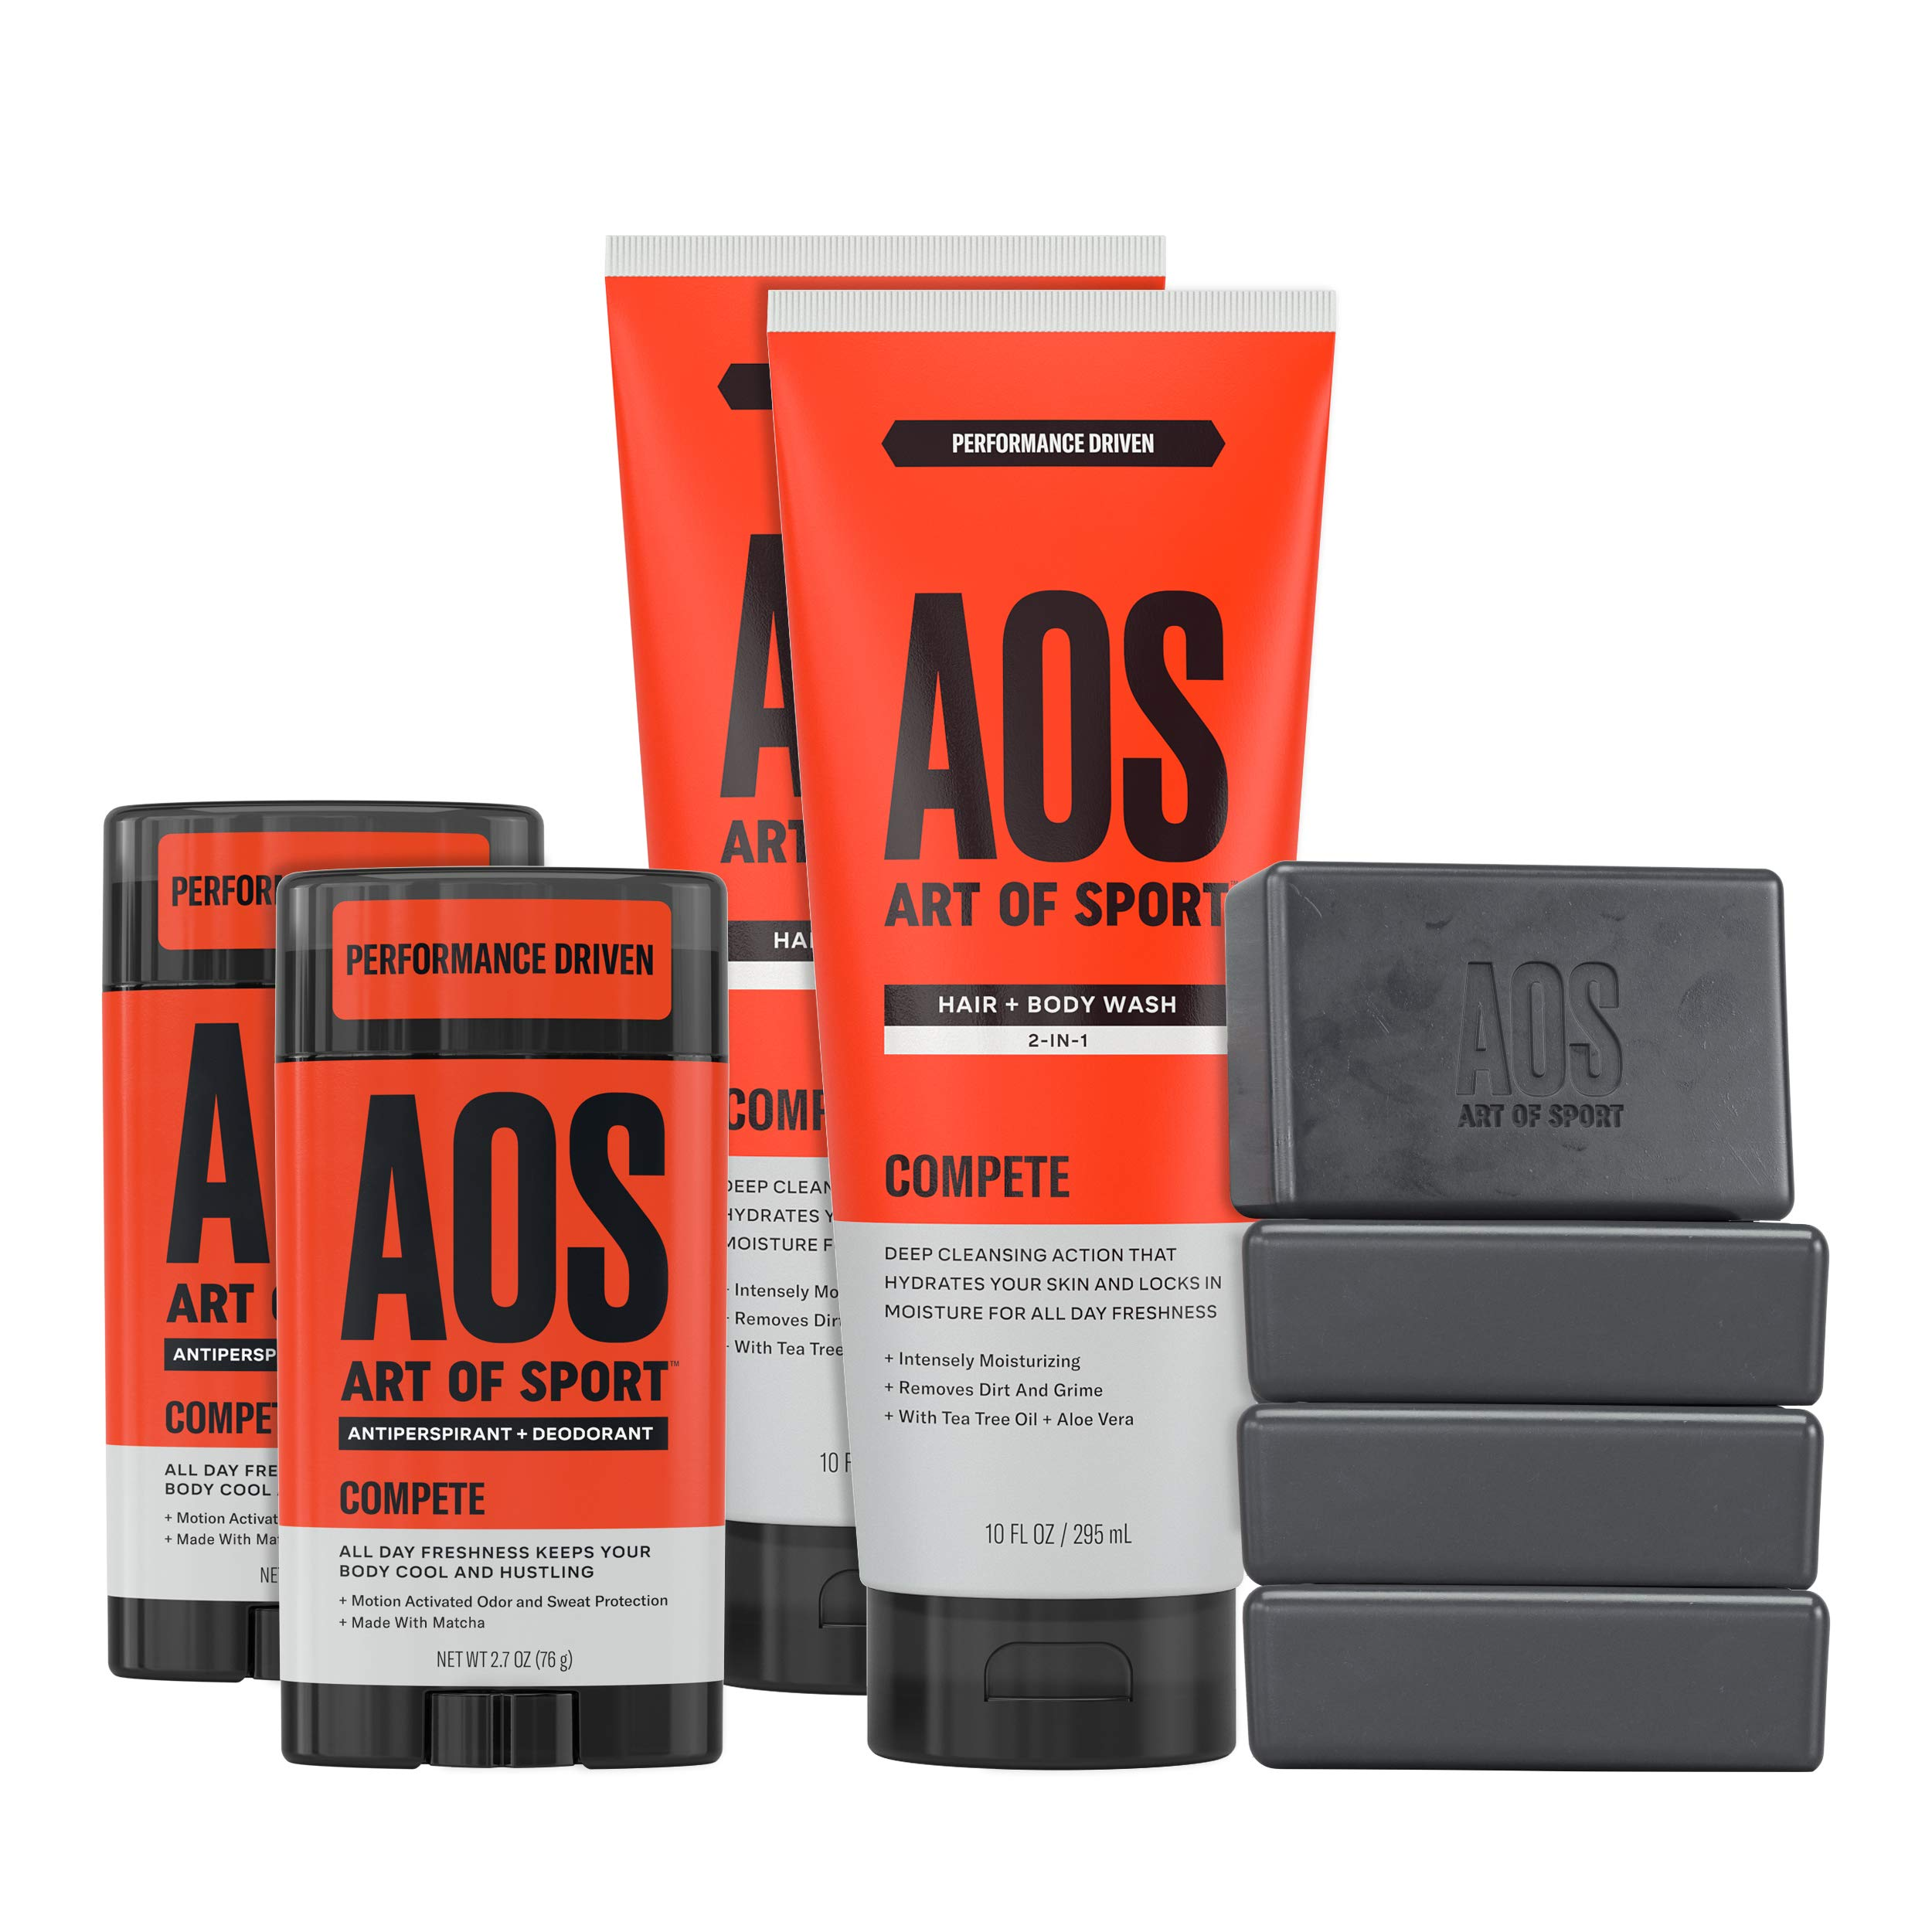 Art of Sport Athlete Collection, Compete Scent, 8pc Skin and Body Care Set with Antiperspirant Deodorant, Body Wash, and Body Bar Soap by Art of Sport